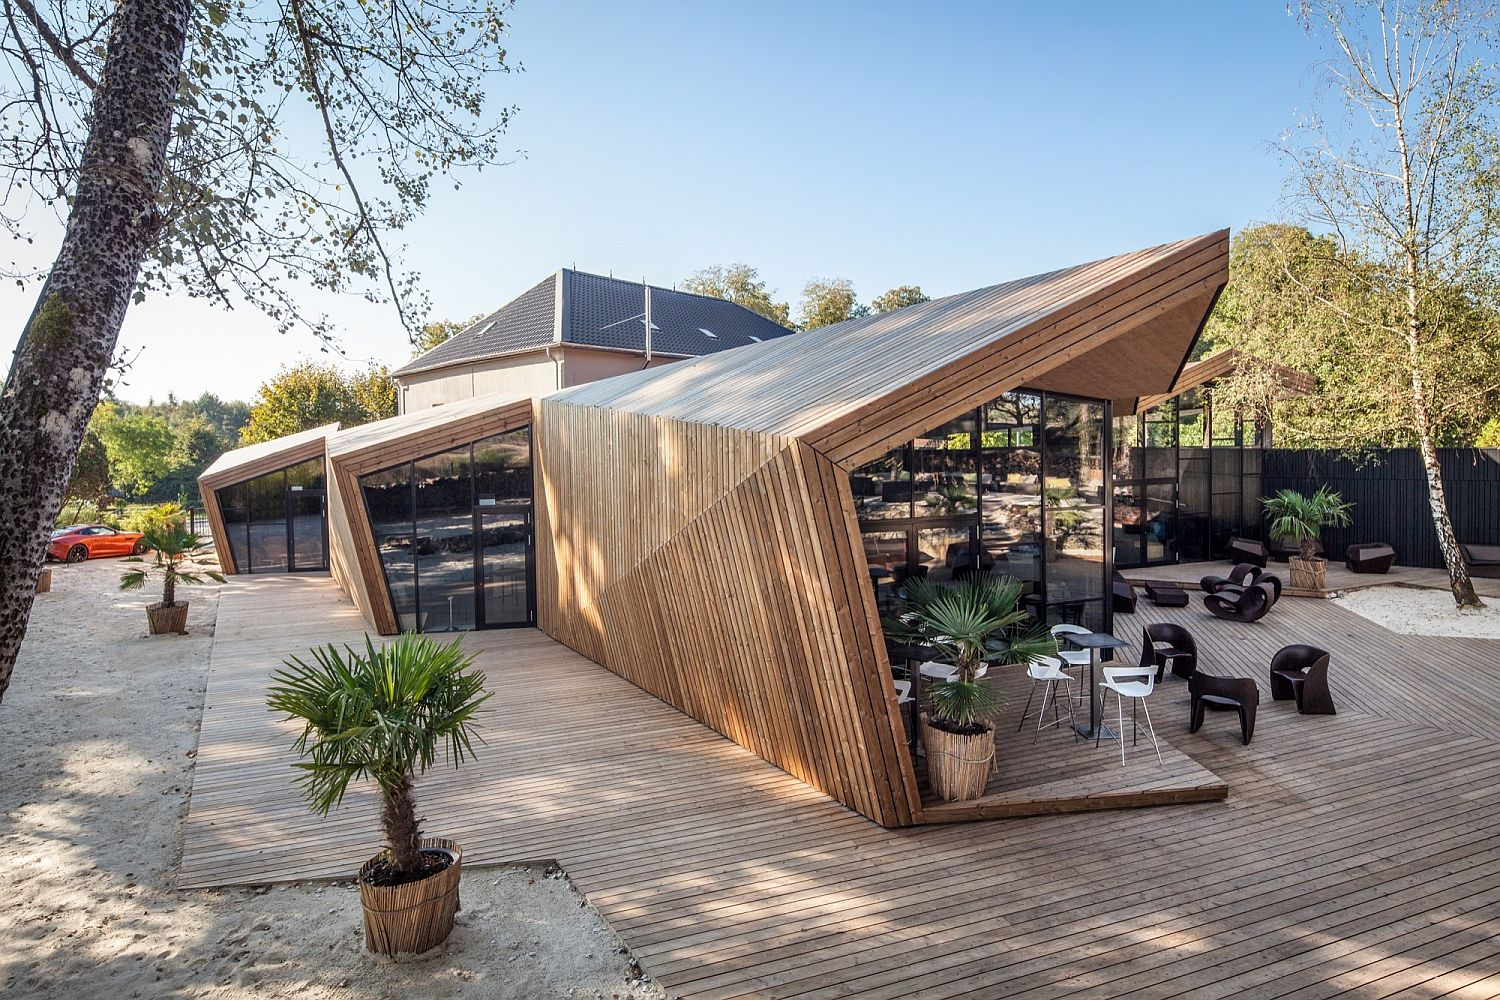 Sculptural-style-of-Luxembourg-restaurant-inspired-by-art-of-origami